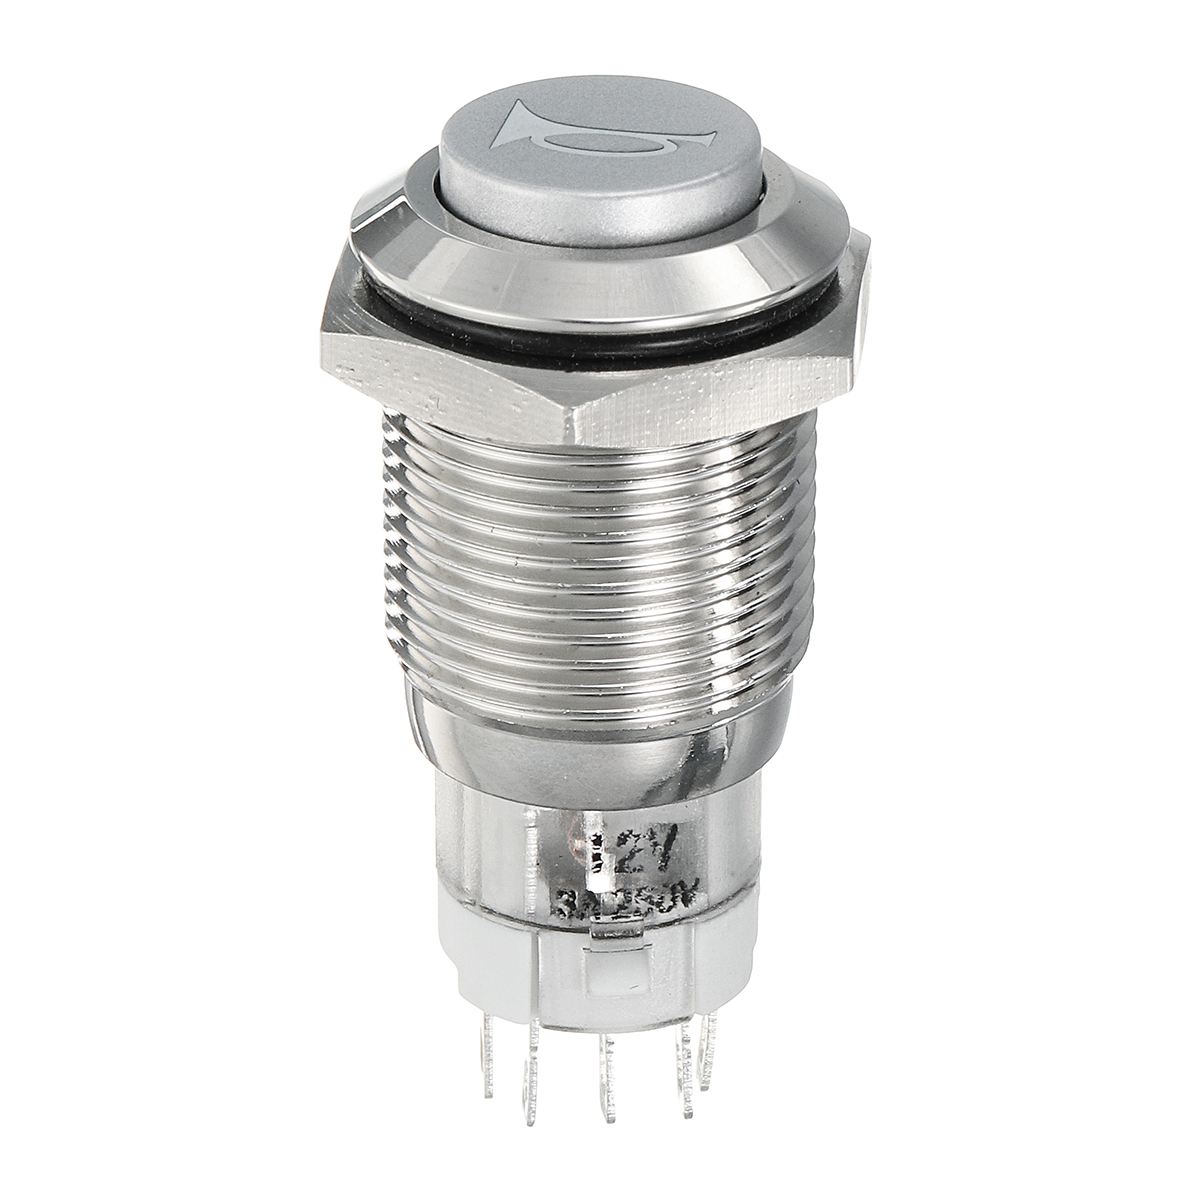 12V 16mm LED Light Waterproof Momentary Horn Metal Push Button Switch For Motorcycle Car Boat